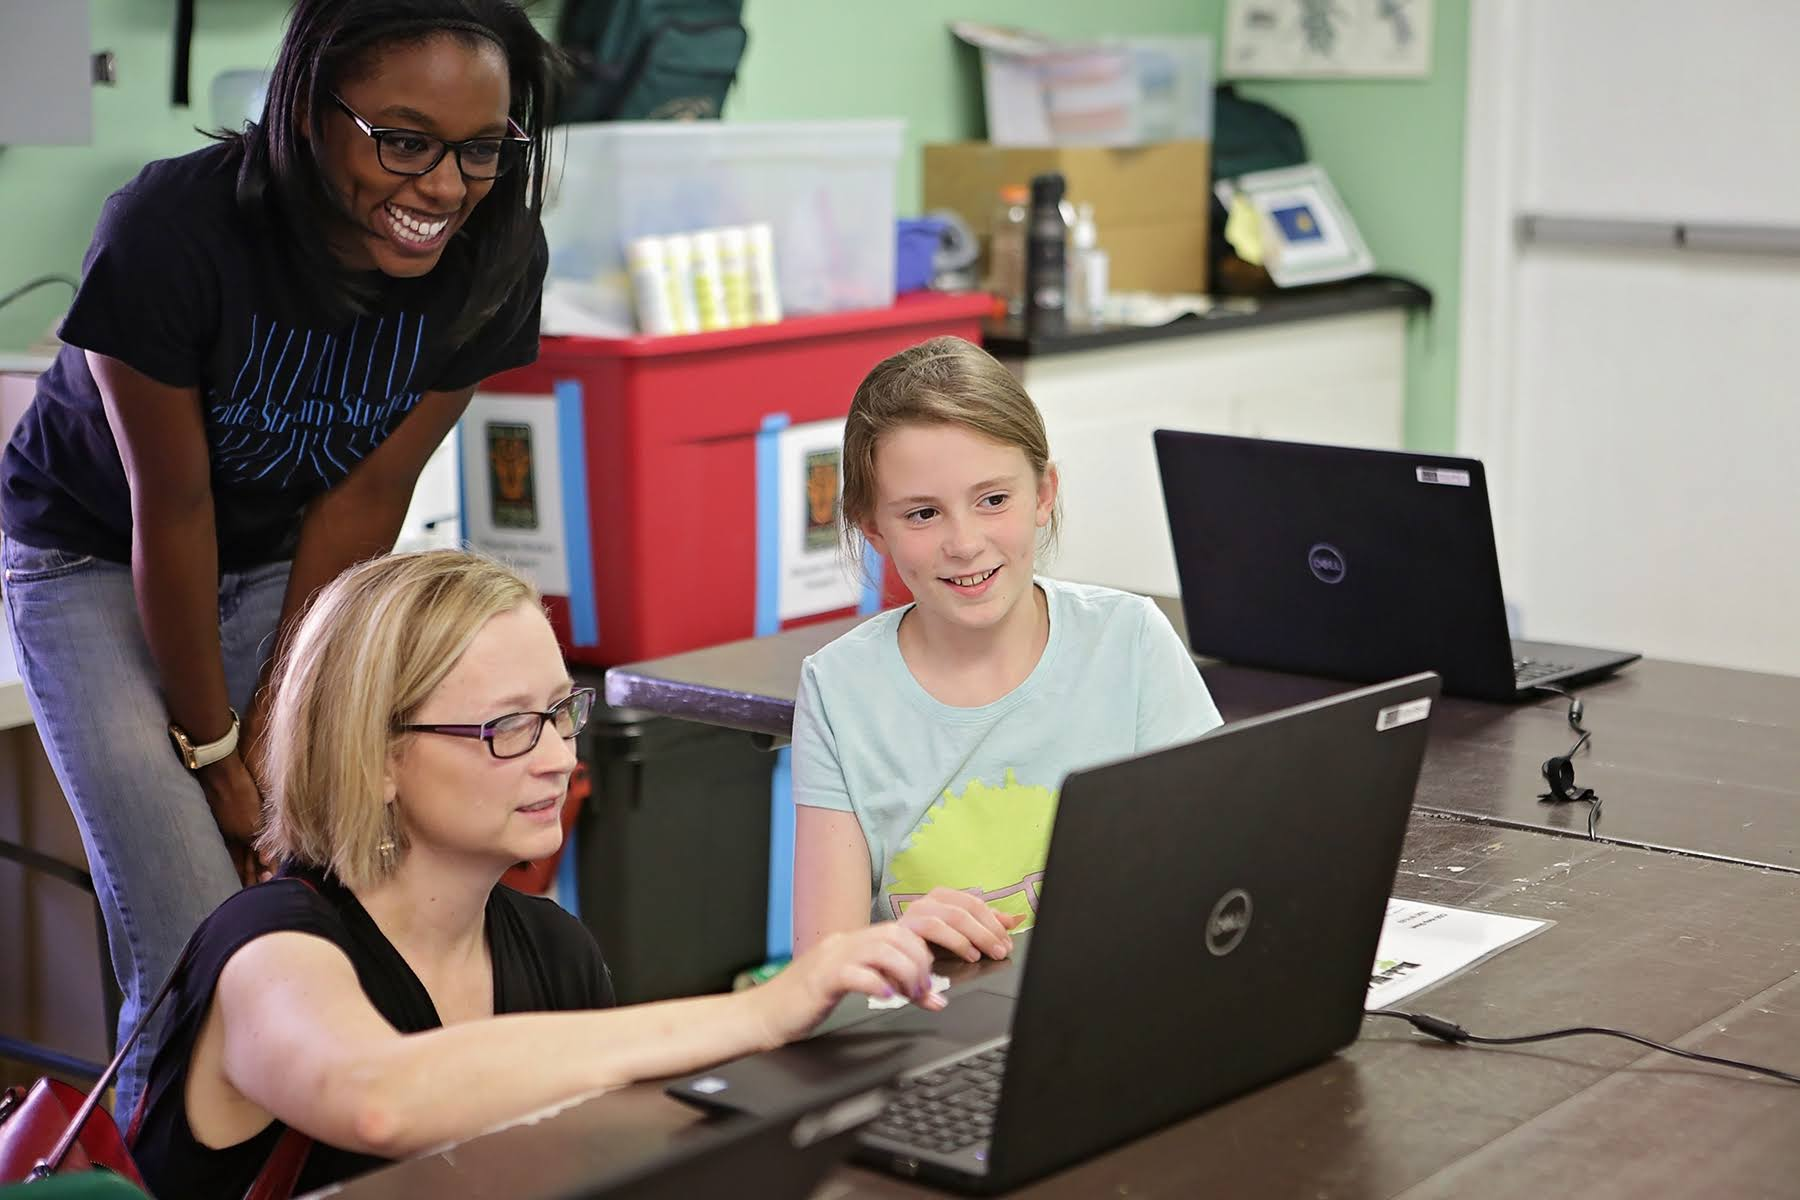 CodeStream Instructors and young girl, smiling at a laptop computer.